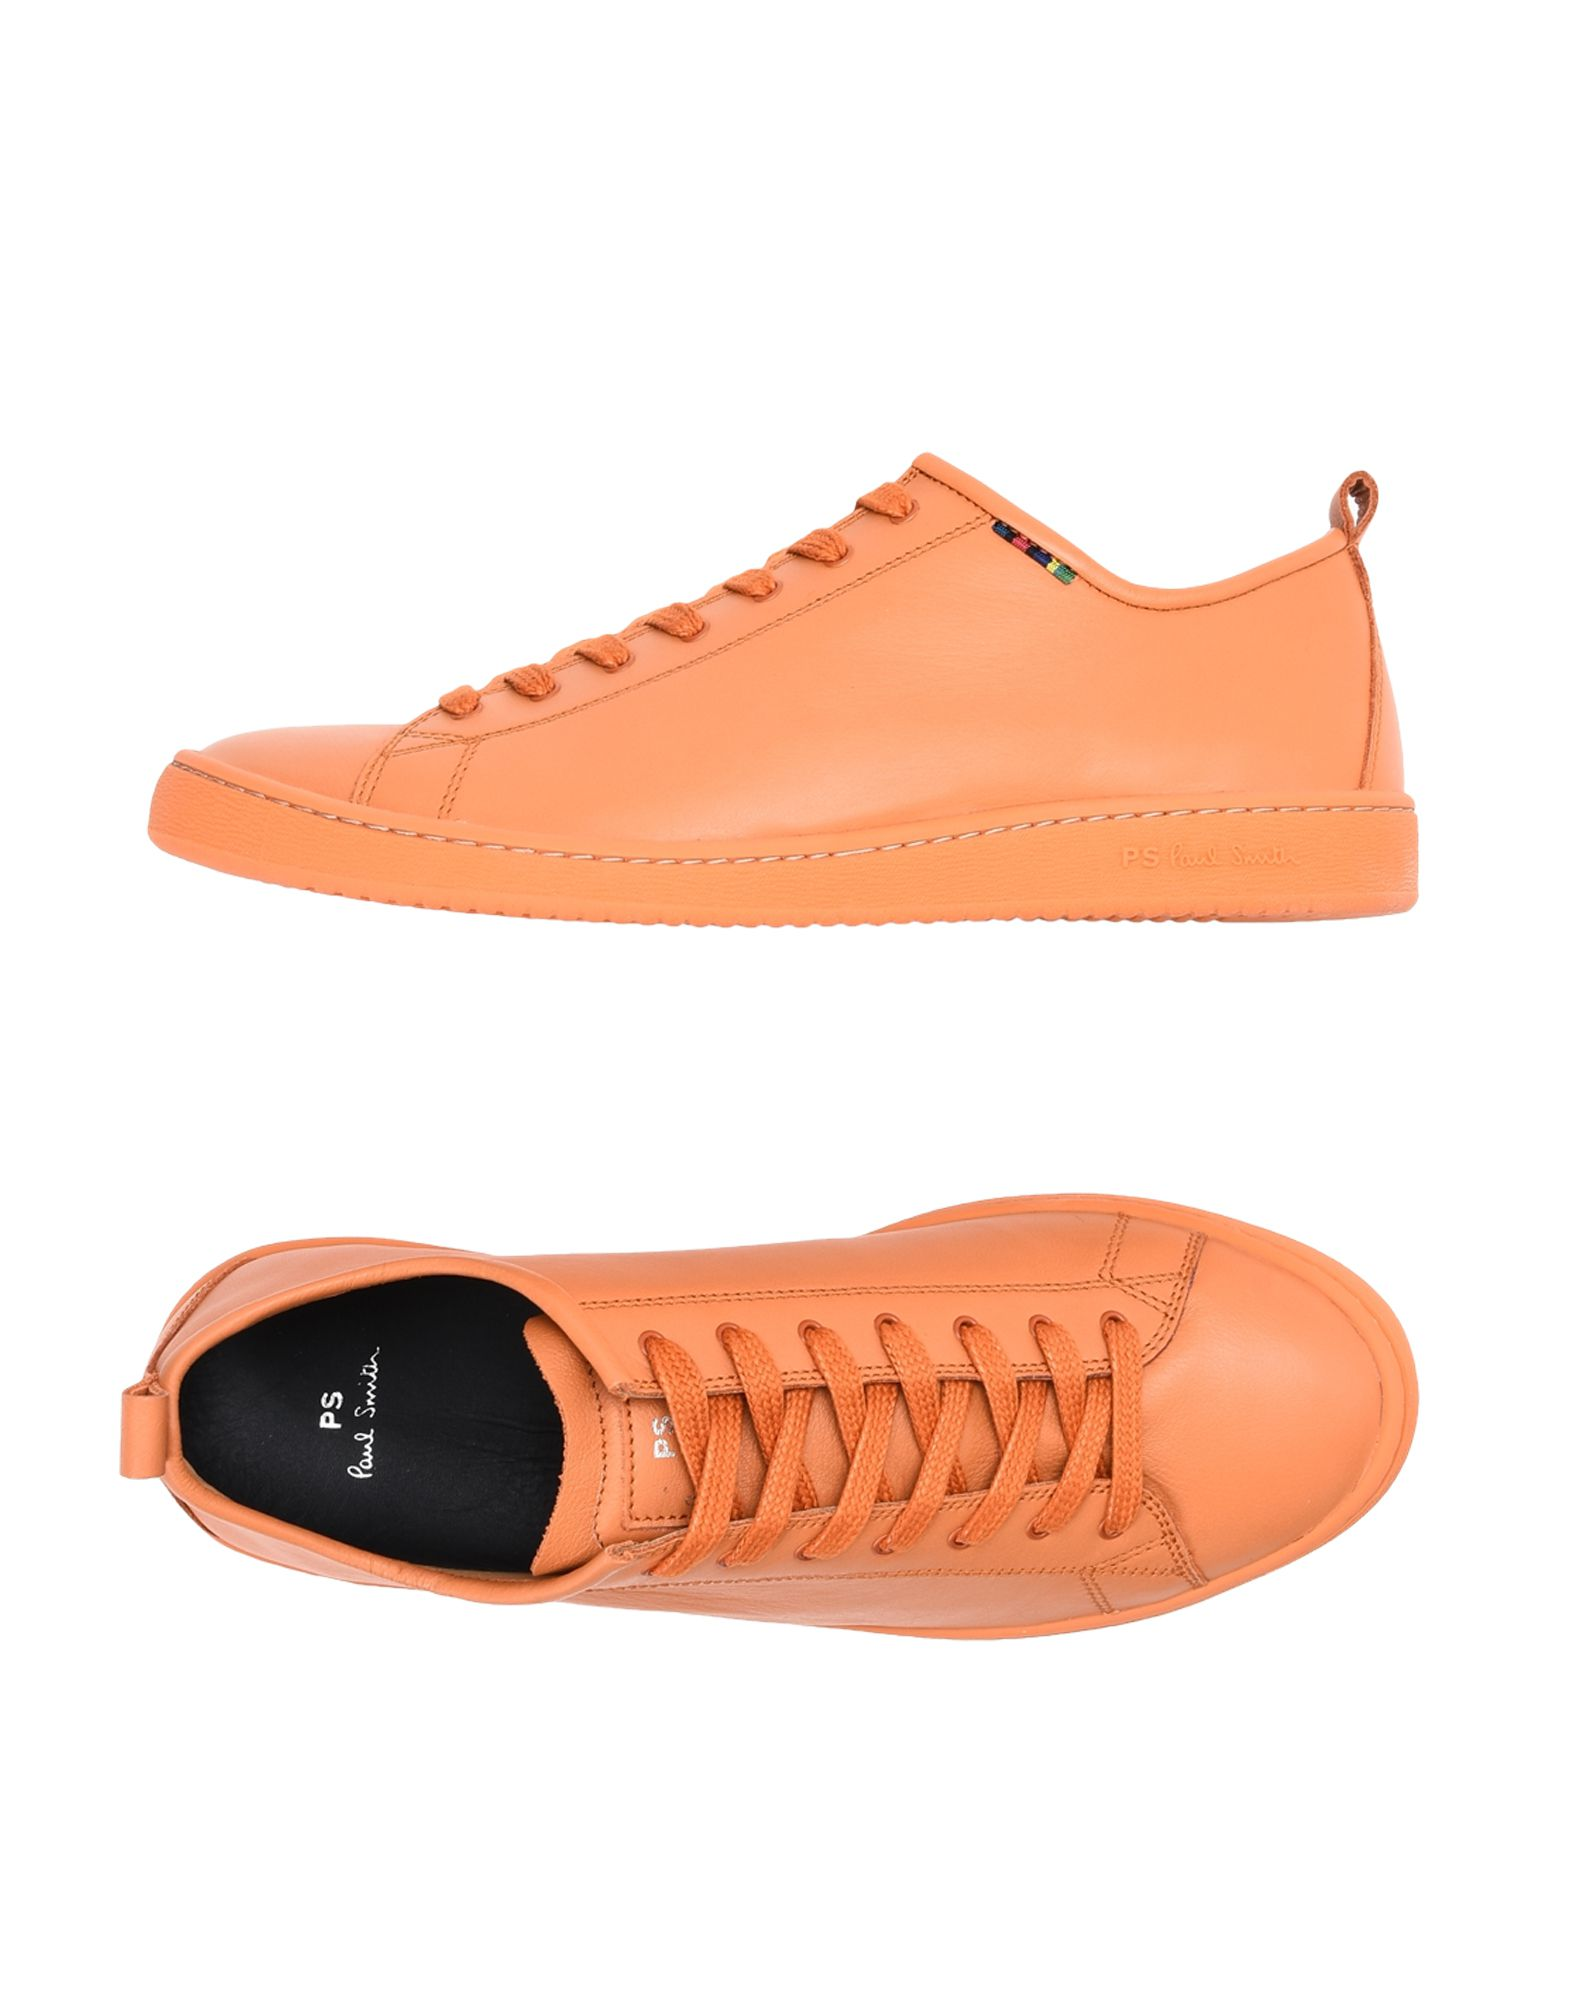 Sneakers Ps By Paul Smith Mens Shoe Miyata Orange - Uomo - Acquista online su